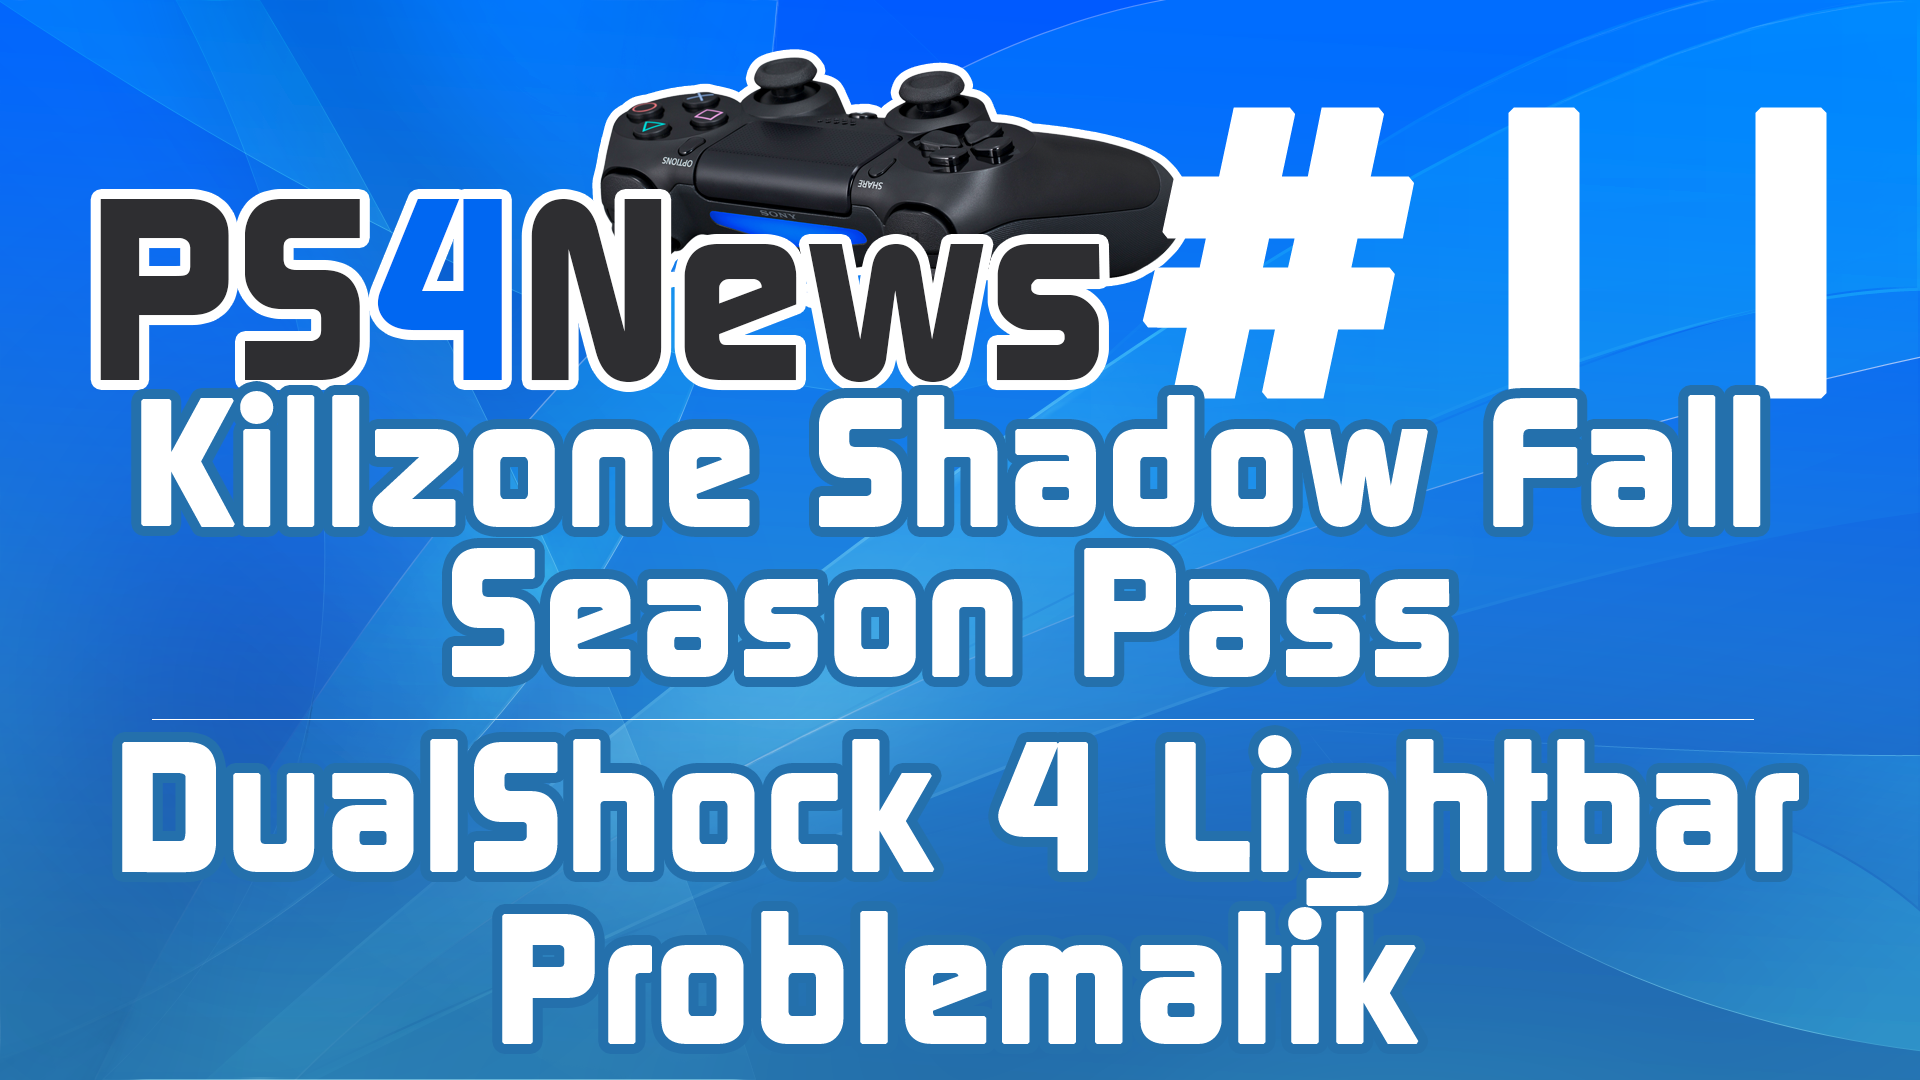 PS4News #11 Killzone Shadow Fall Season Pass – DualShock 4 Lightbar Reflexion am Fernseher uvm.